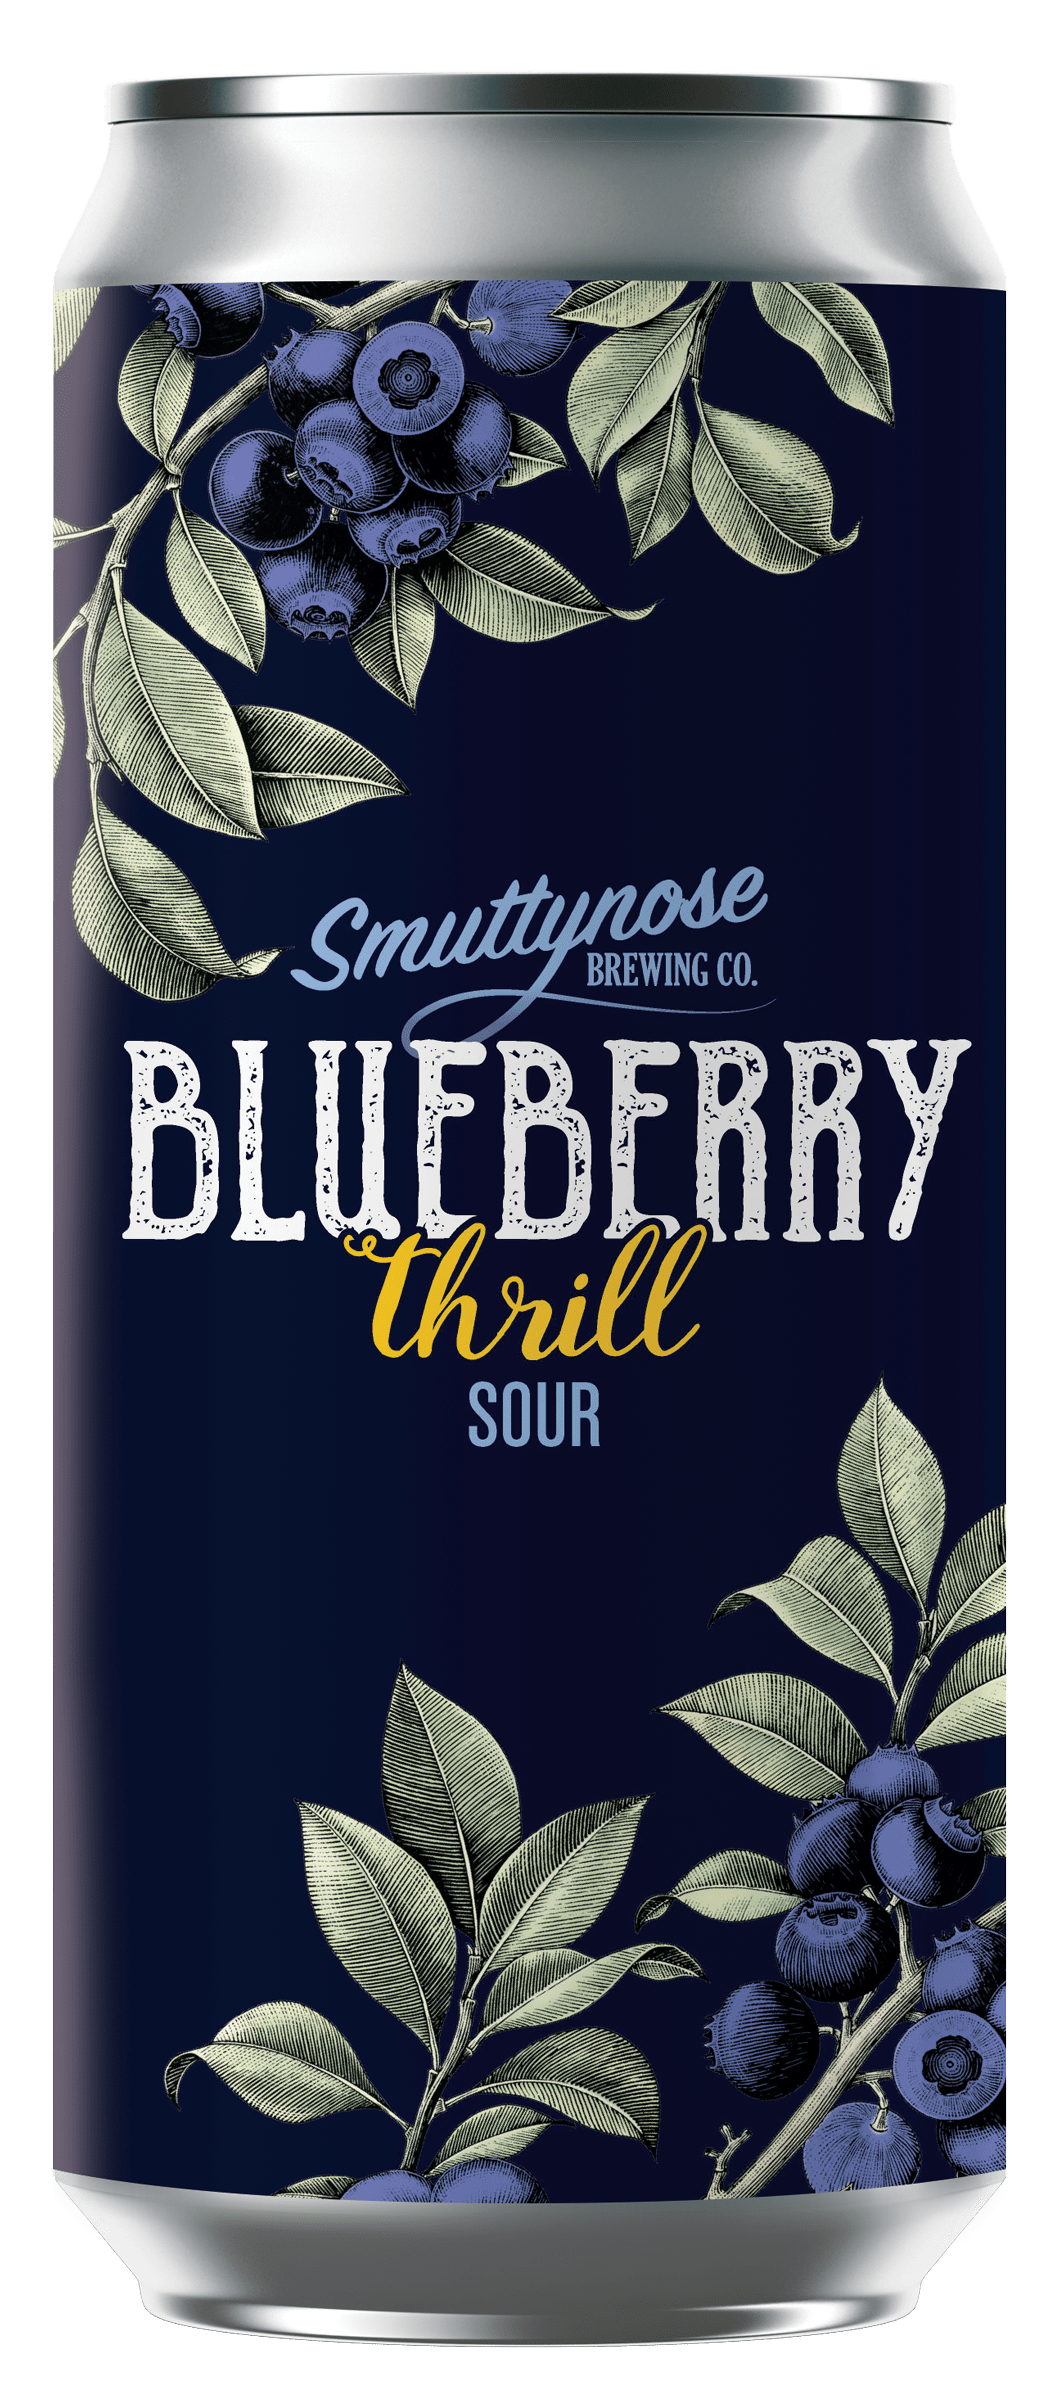 BLUEBERRY THRILL SOUR